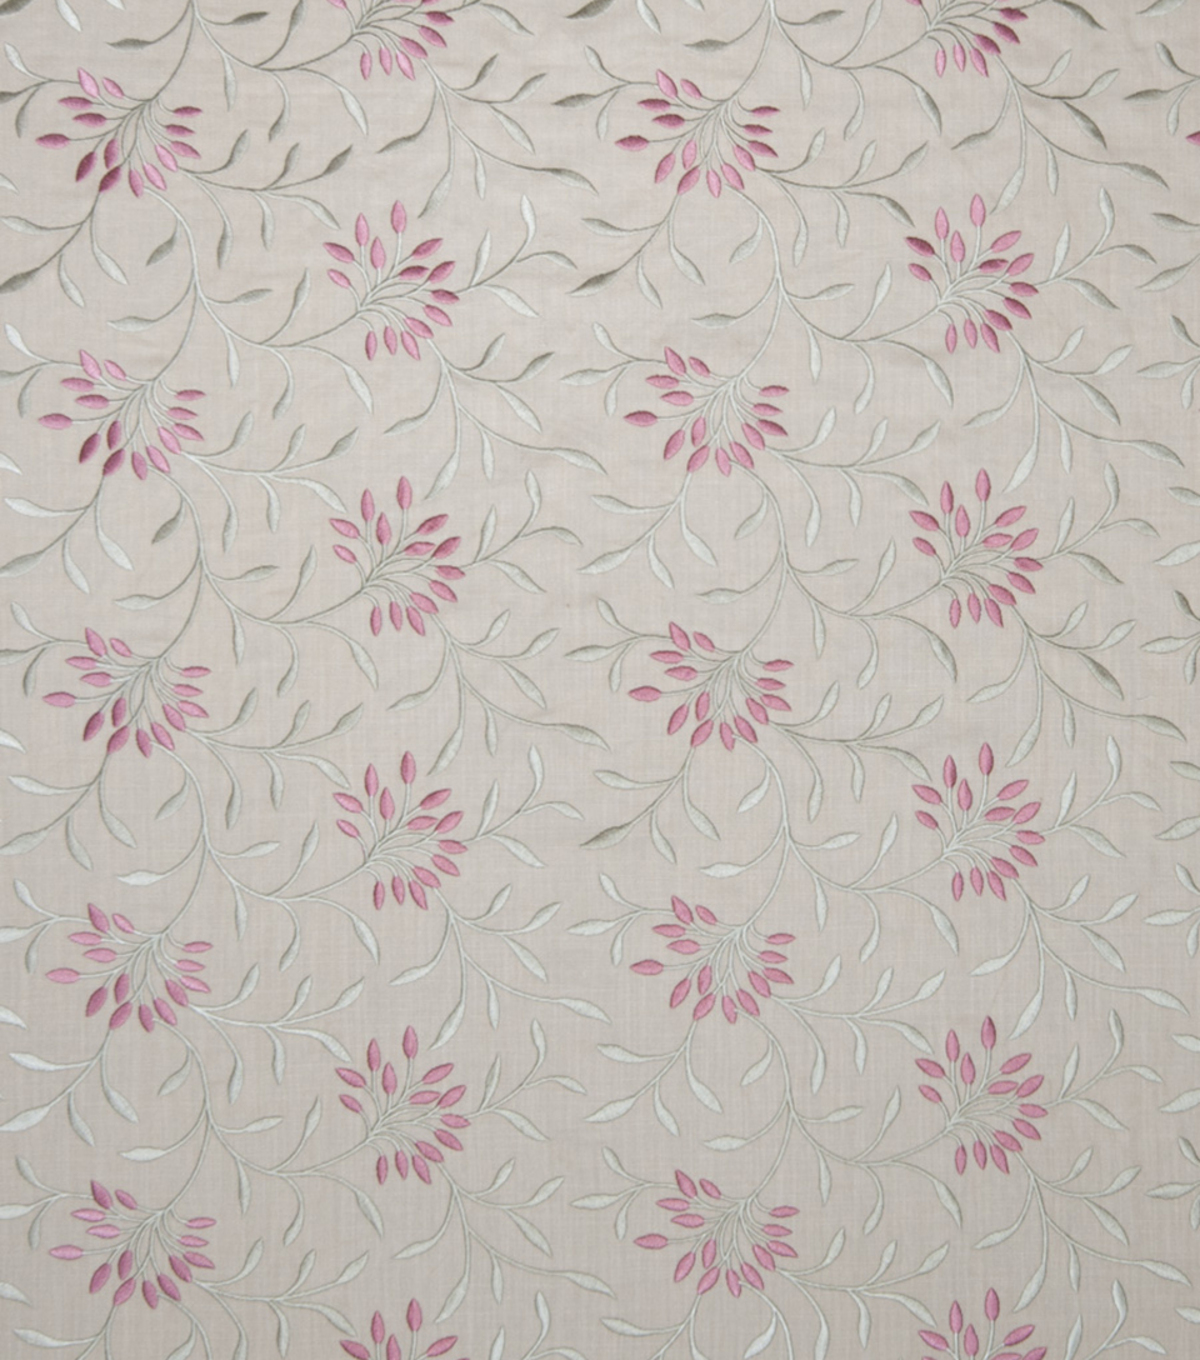 Home Decor 8\u0022x8\u0022 Fabric Swatch-Print Fabric Eaton Square Greenville Berry